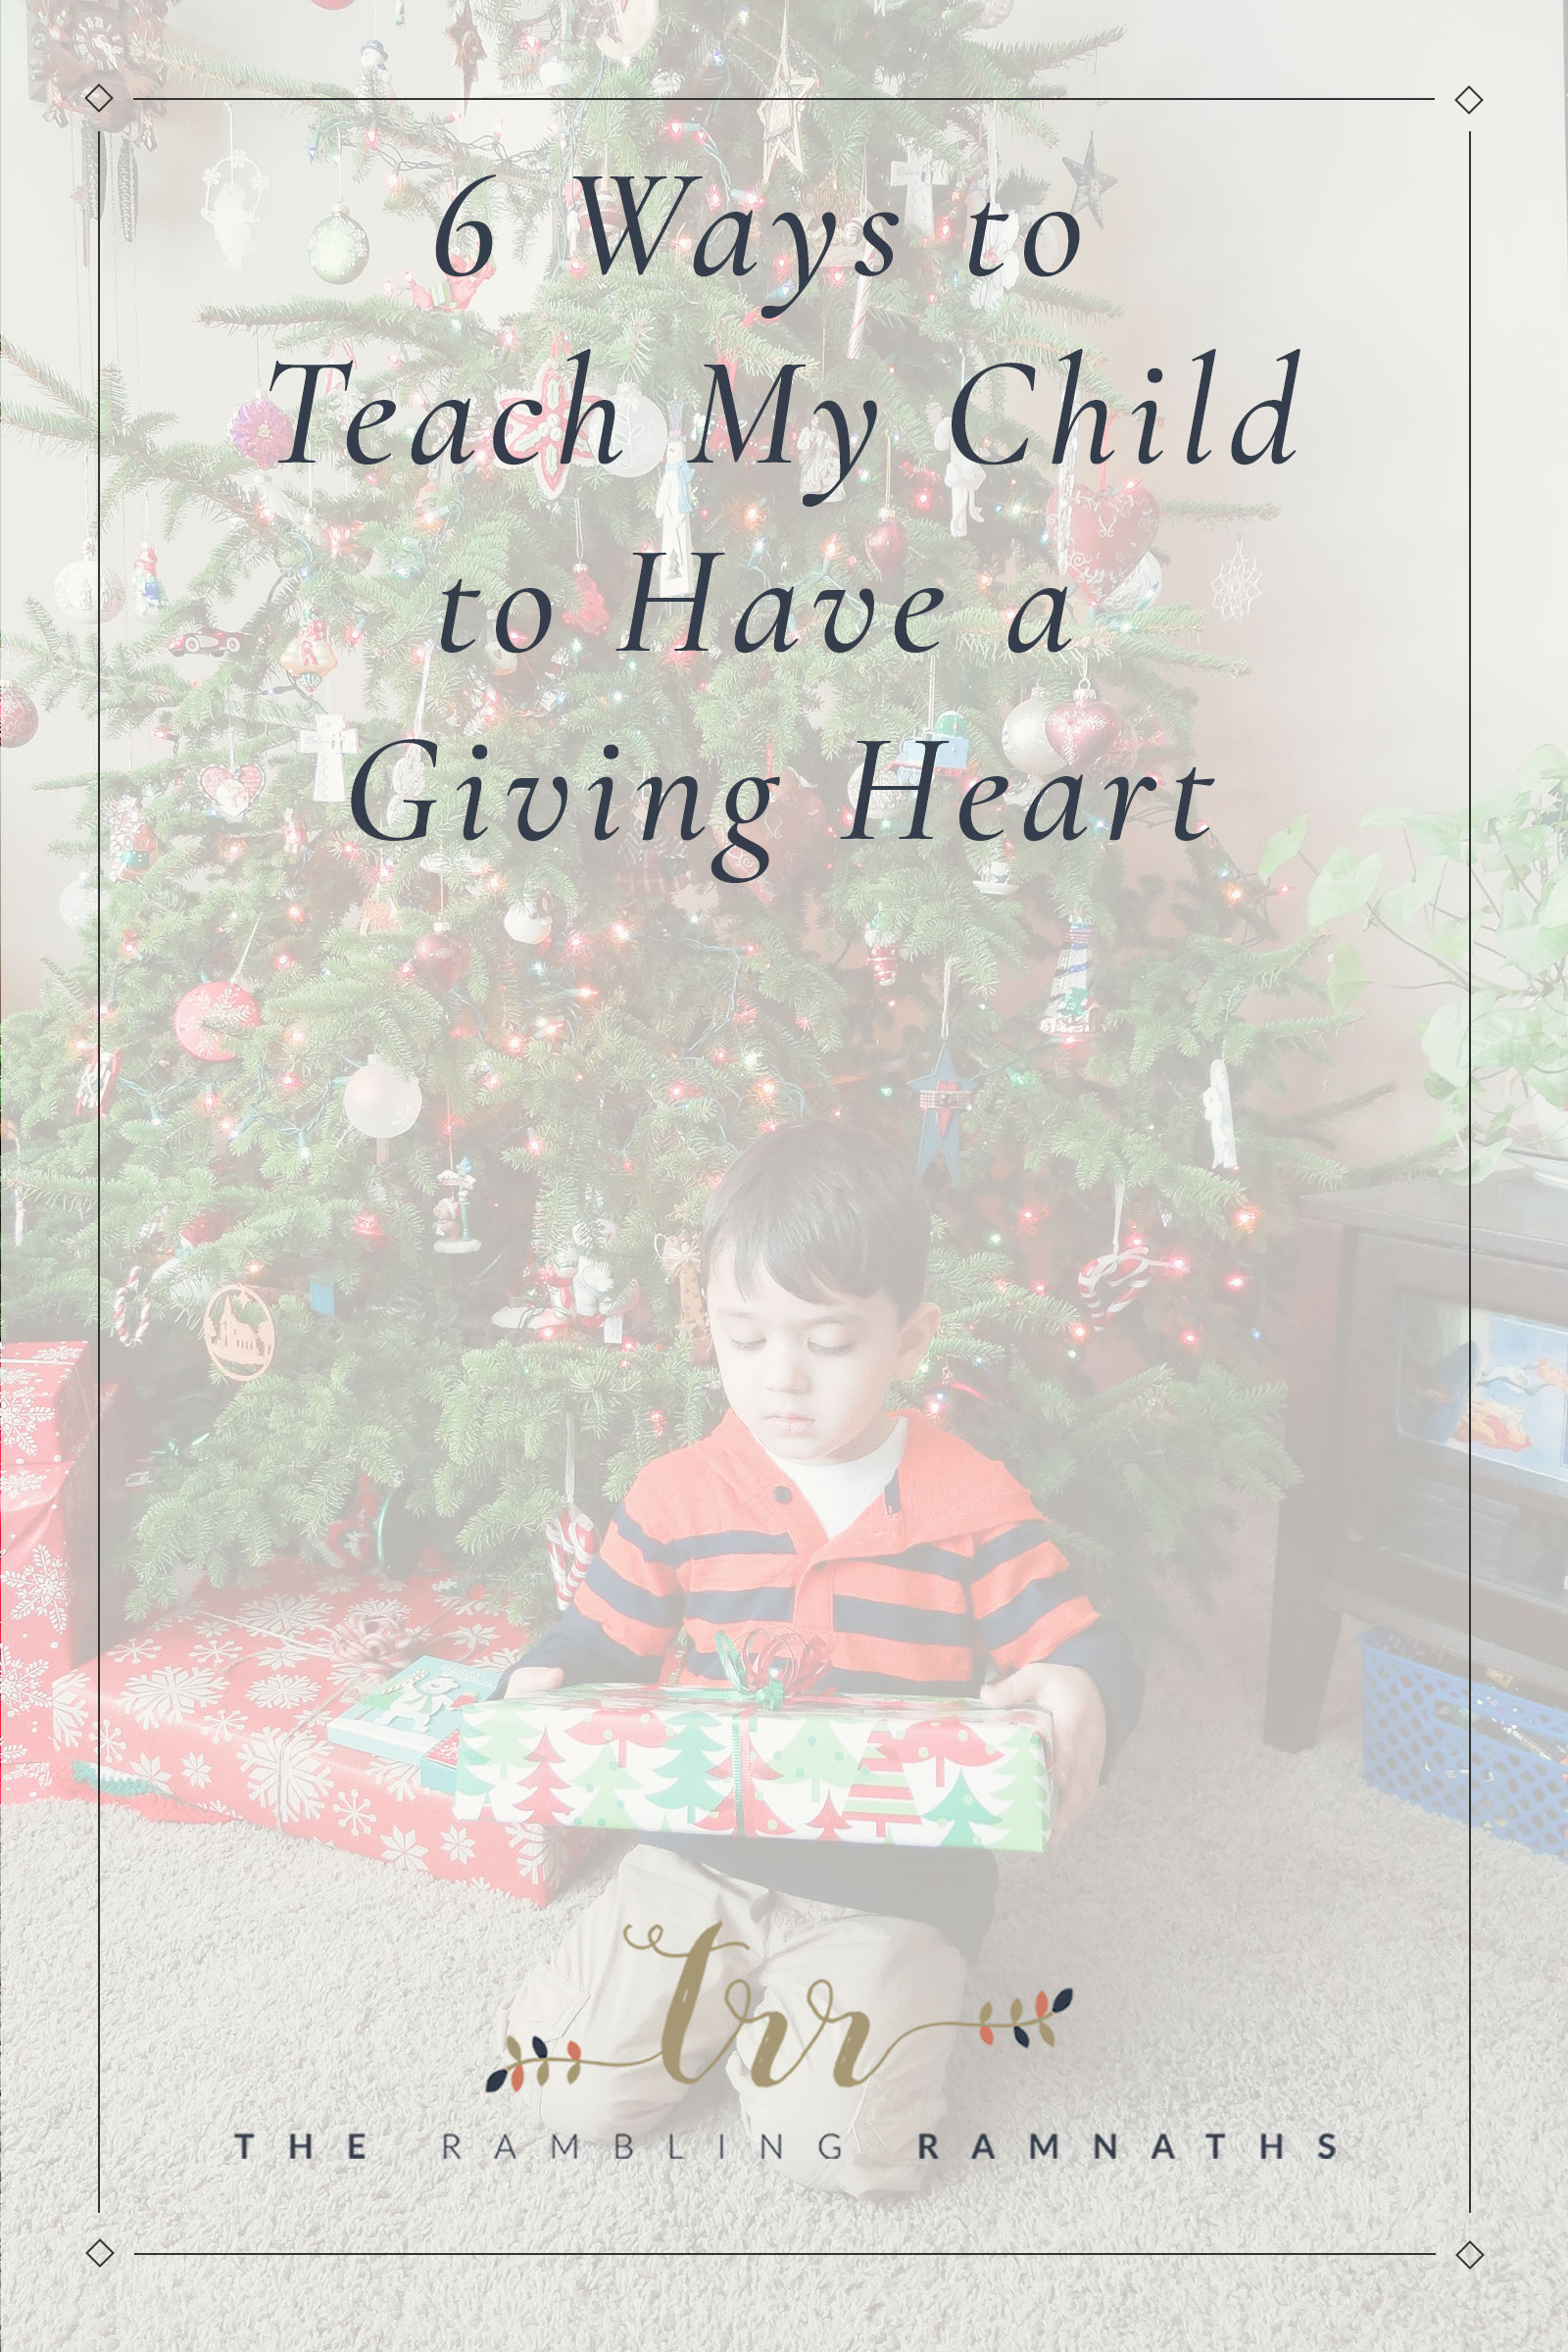 6 Ways to Teach My Child to Have a Giving Heart. Especially around Christmas.